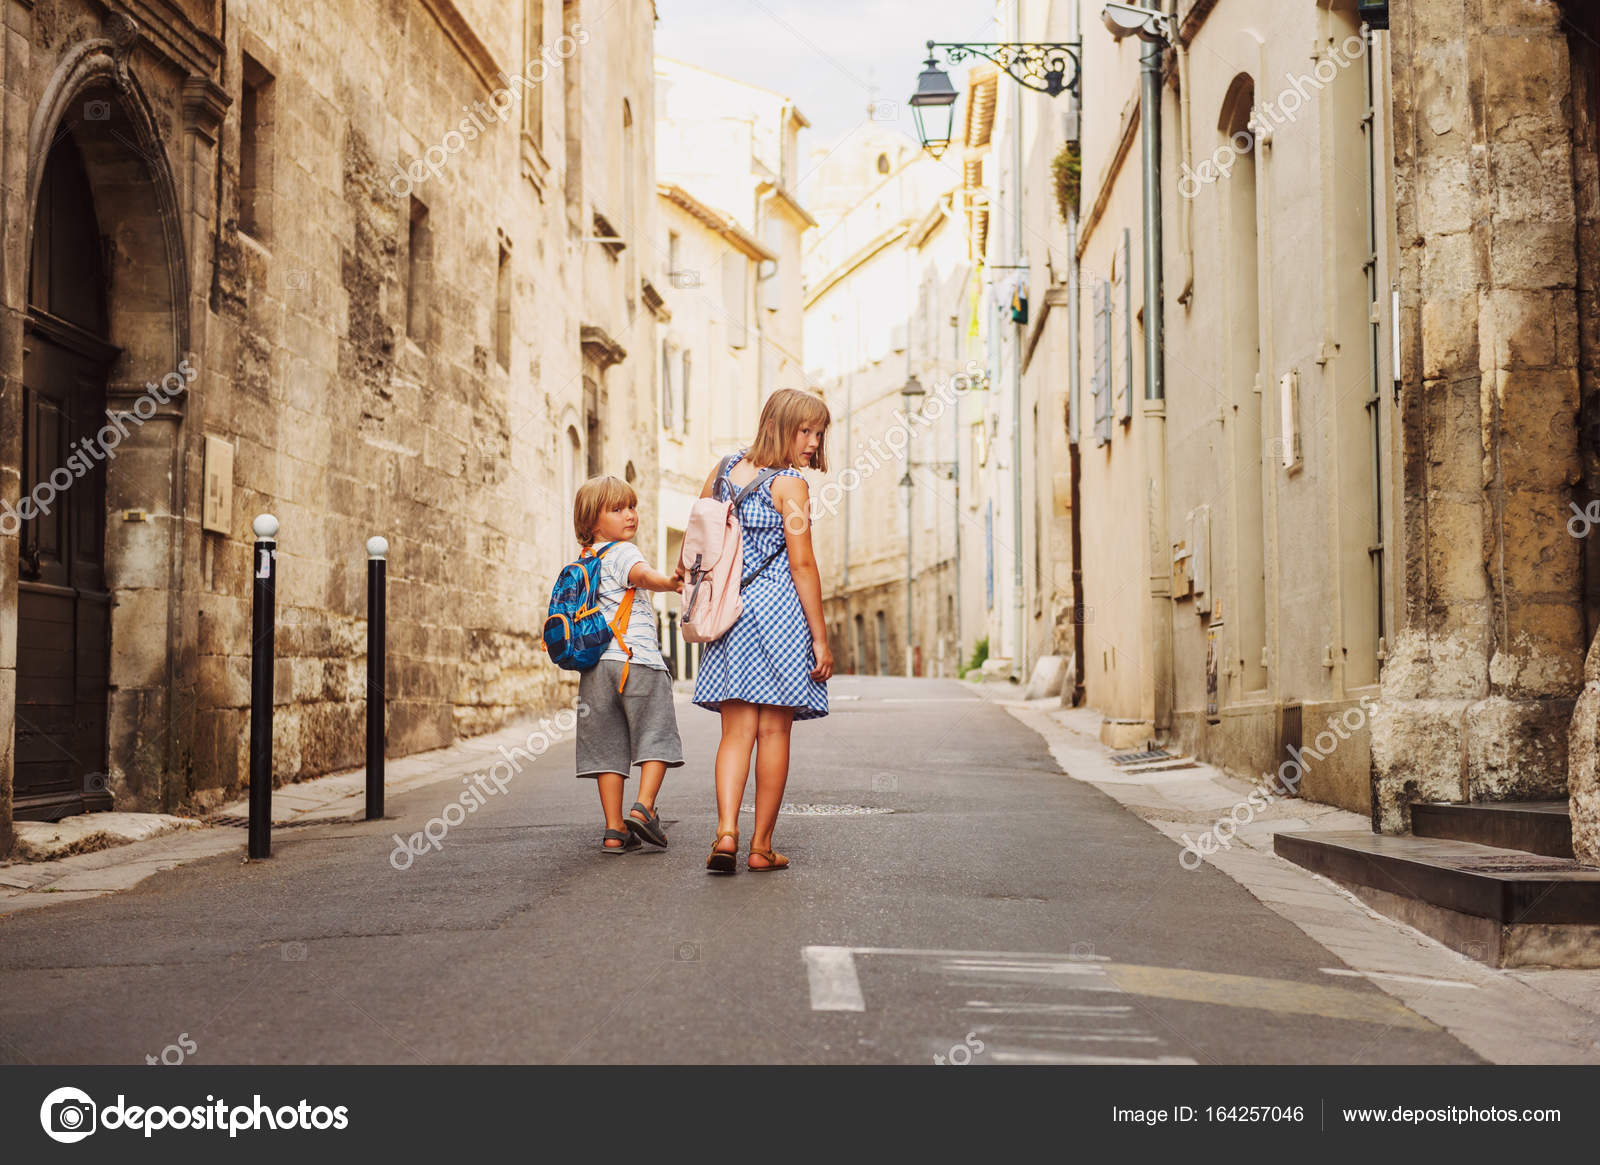 Group Of Two Kids Walking On The Streets Of Old European Town